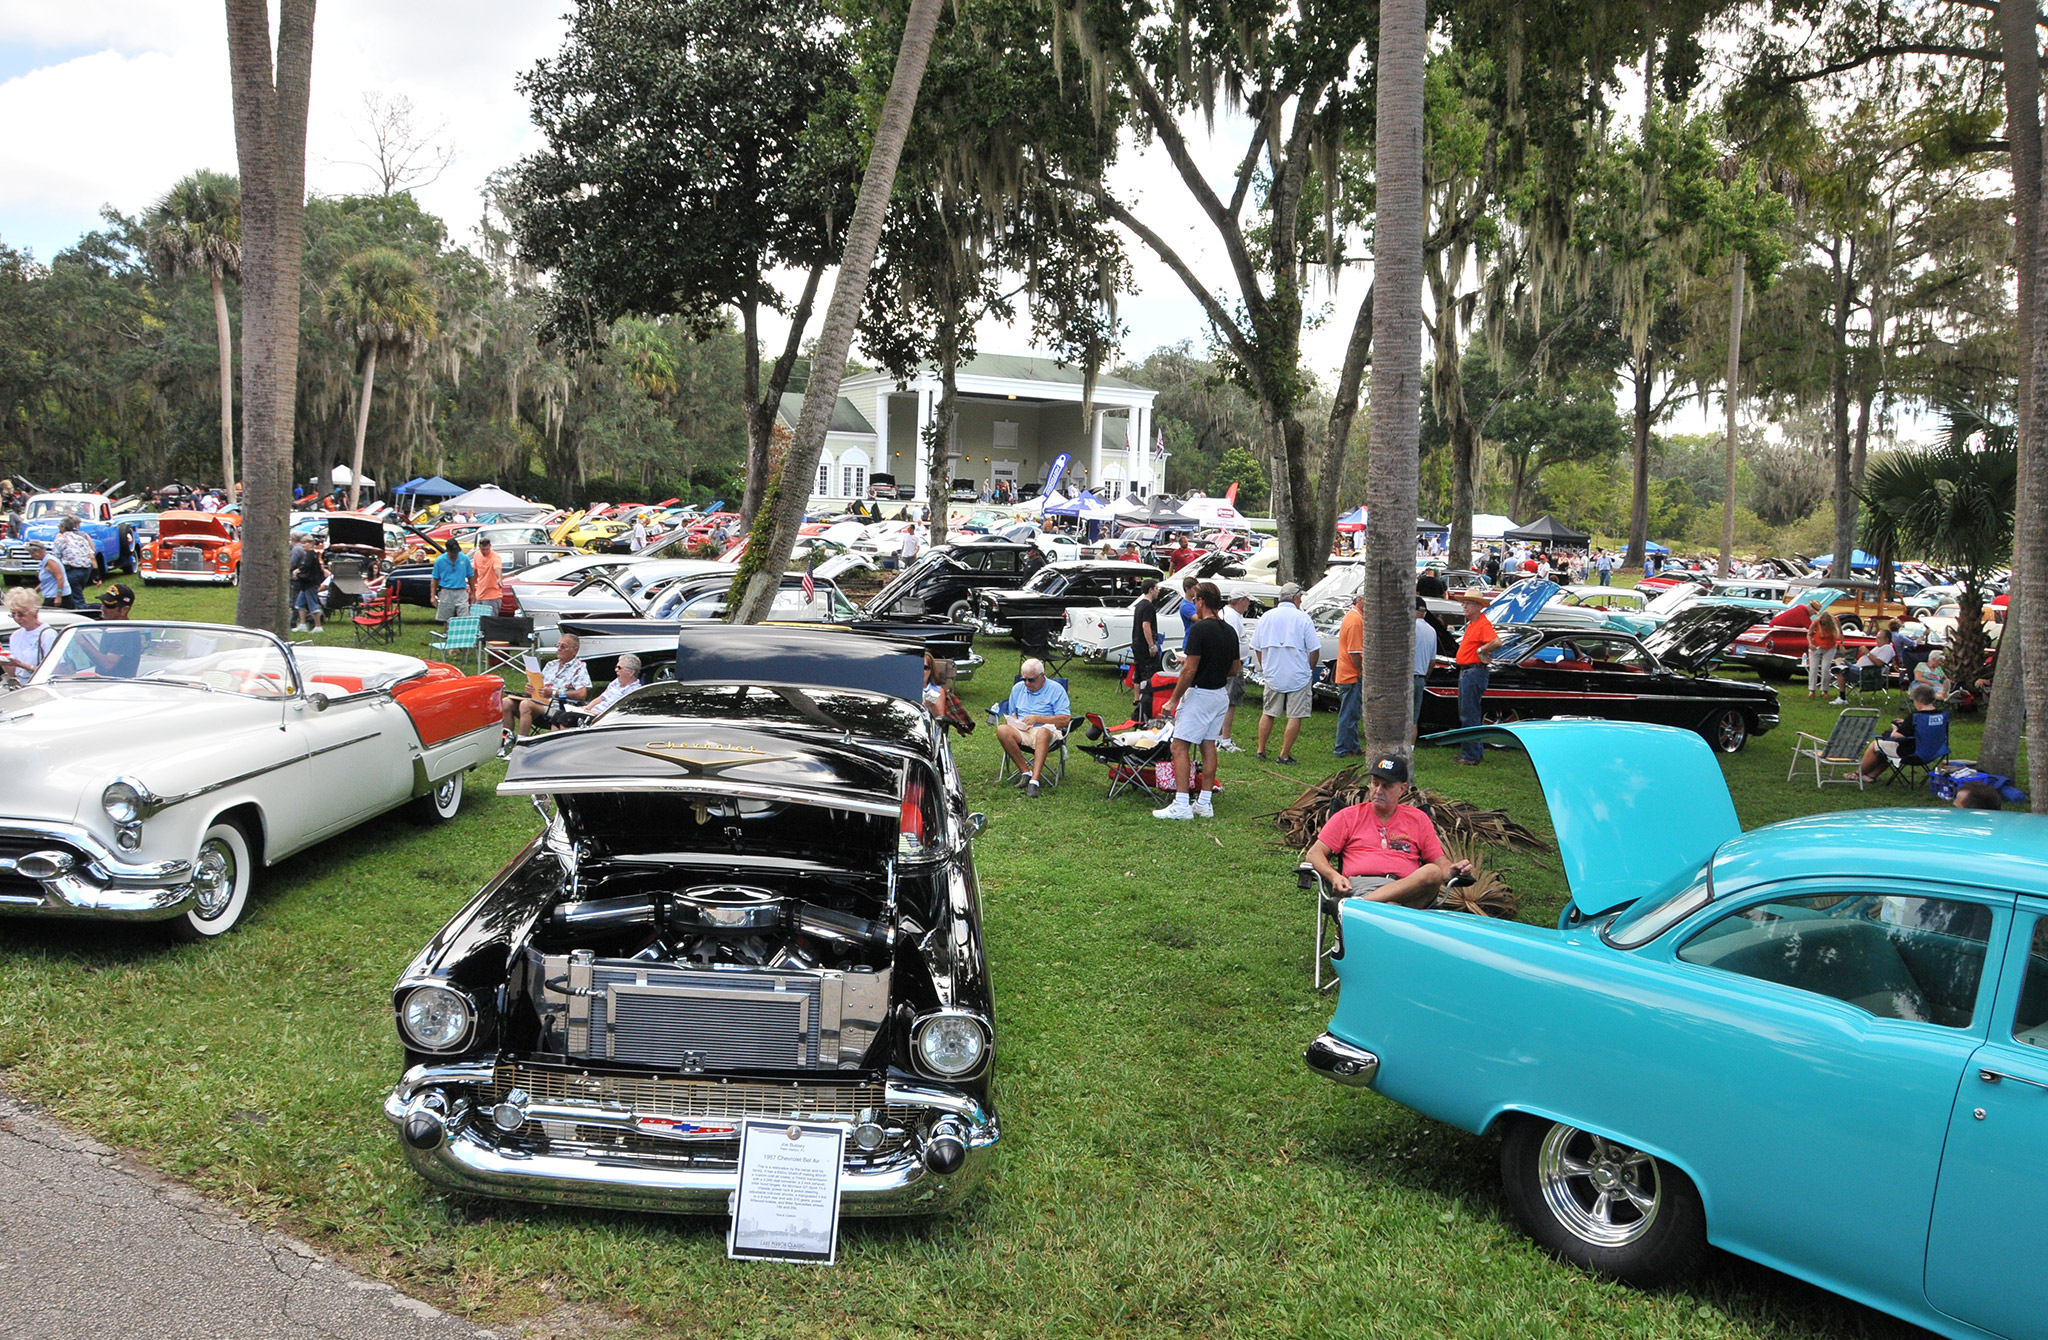 More than 450 GM vehicles were displayed throughout the park.